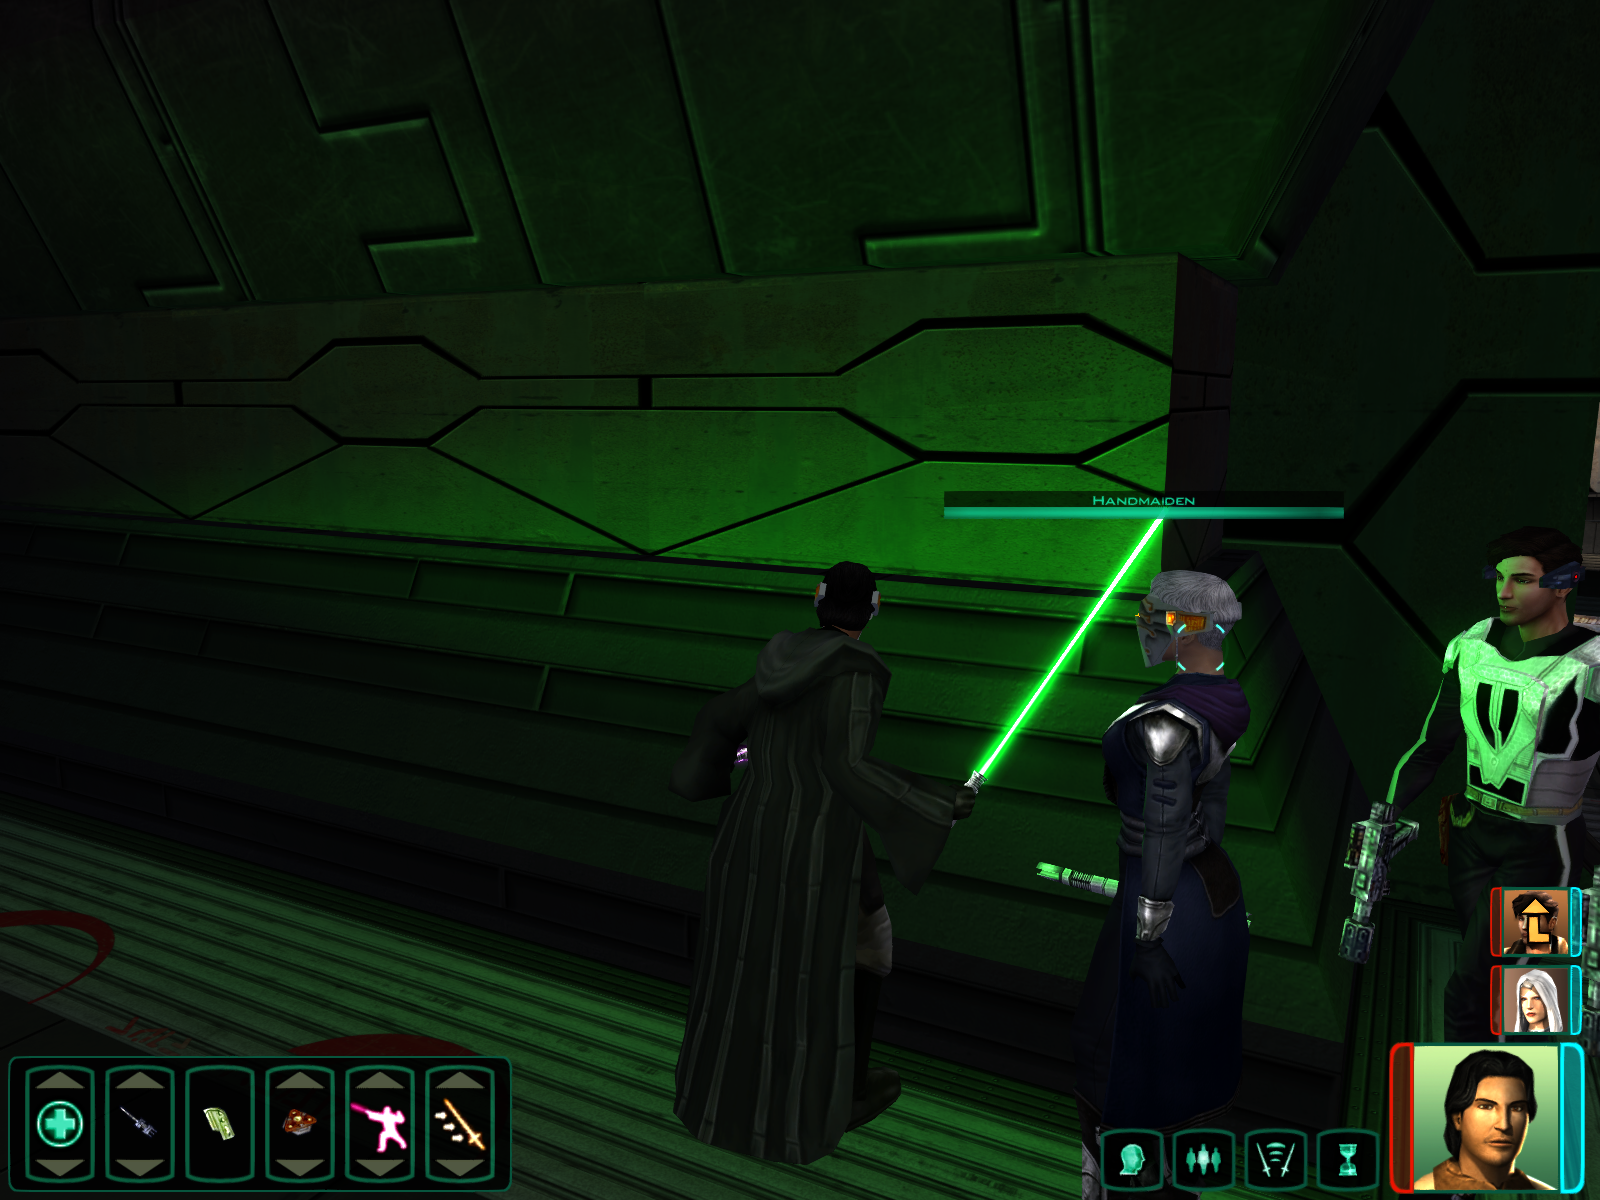 swkotor2 2020-04-20 21-42-01.png